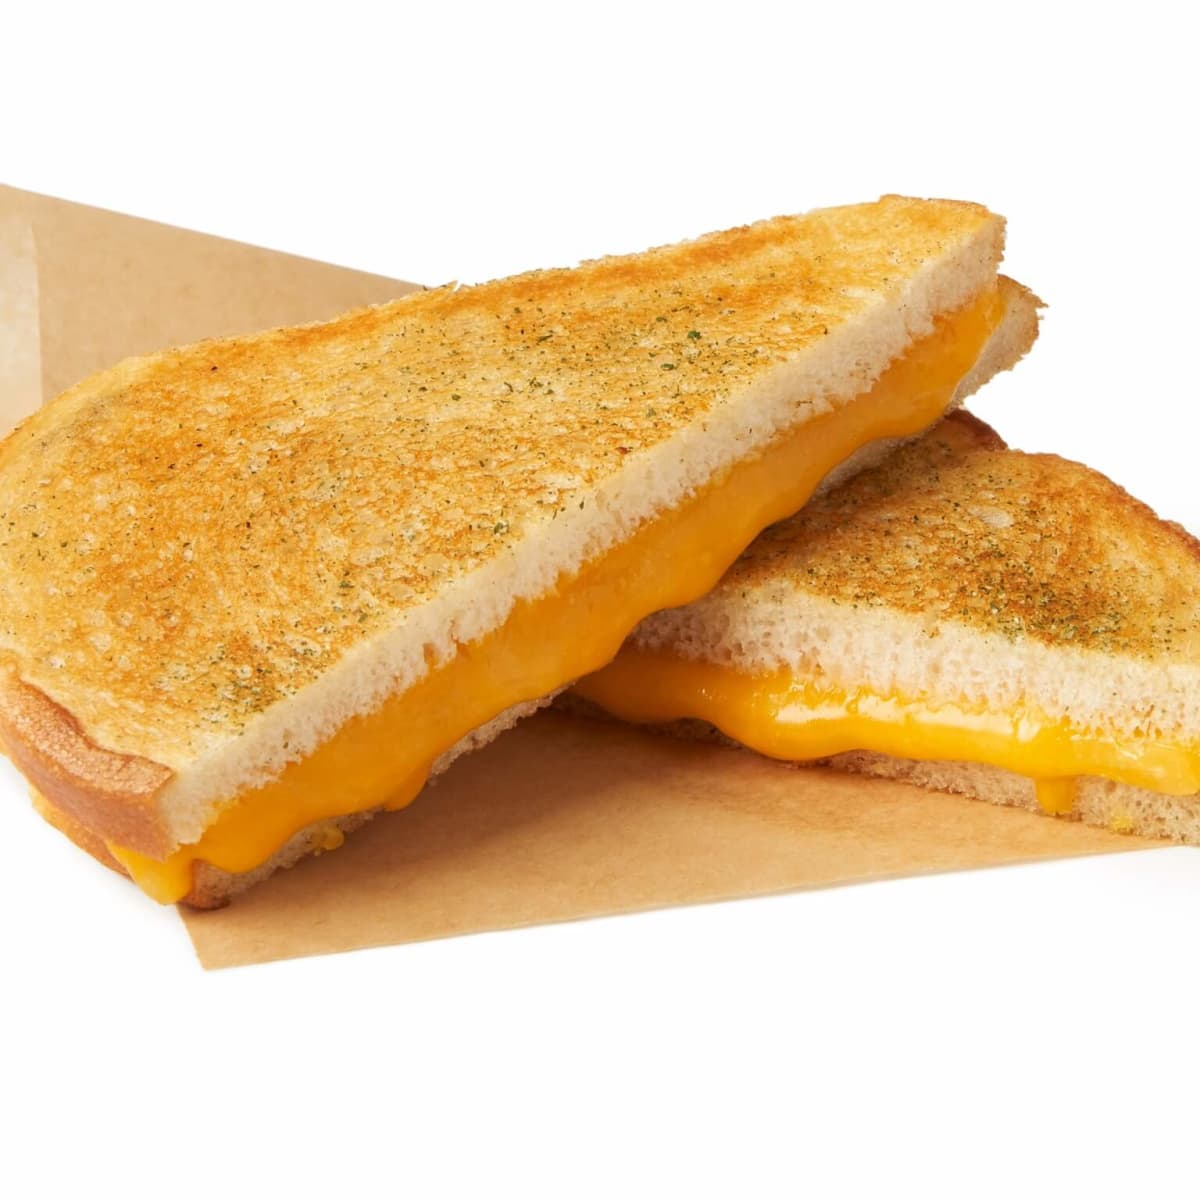 The Melt grilled cheese